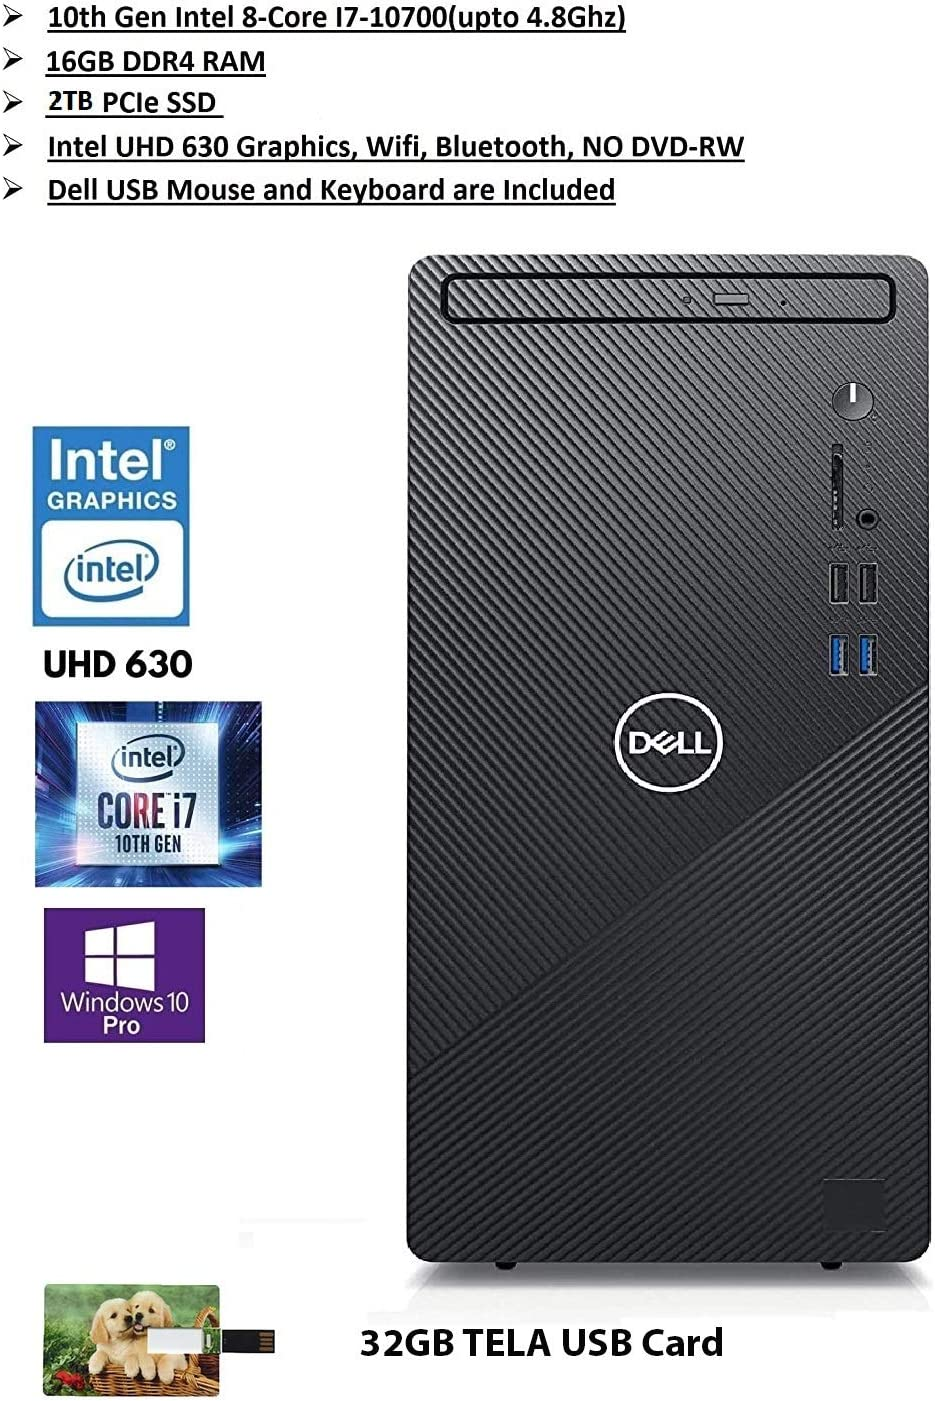 2020 Newest Dell Inspiron Biz Tower Desktop: 10th Gen Intel 8-Core i7 Processor(Upto 4.8Ghz), 16GB RAM, 2TB PCIe SSD, Intel UHD, WiFi, Bluetooth, VGA, HDMI, USB3.0, Win 10 Pro | 32GB Tela USB Card